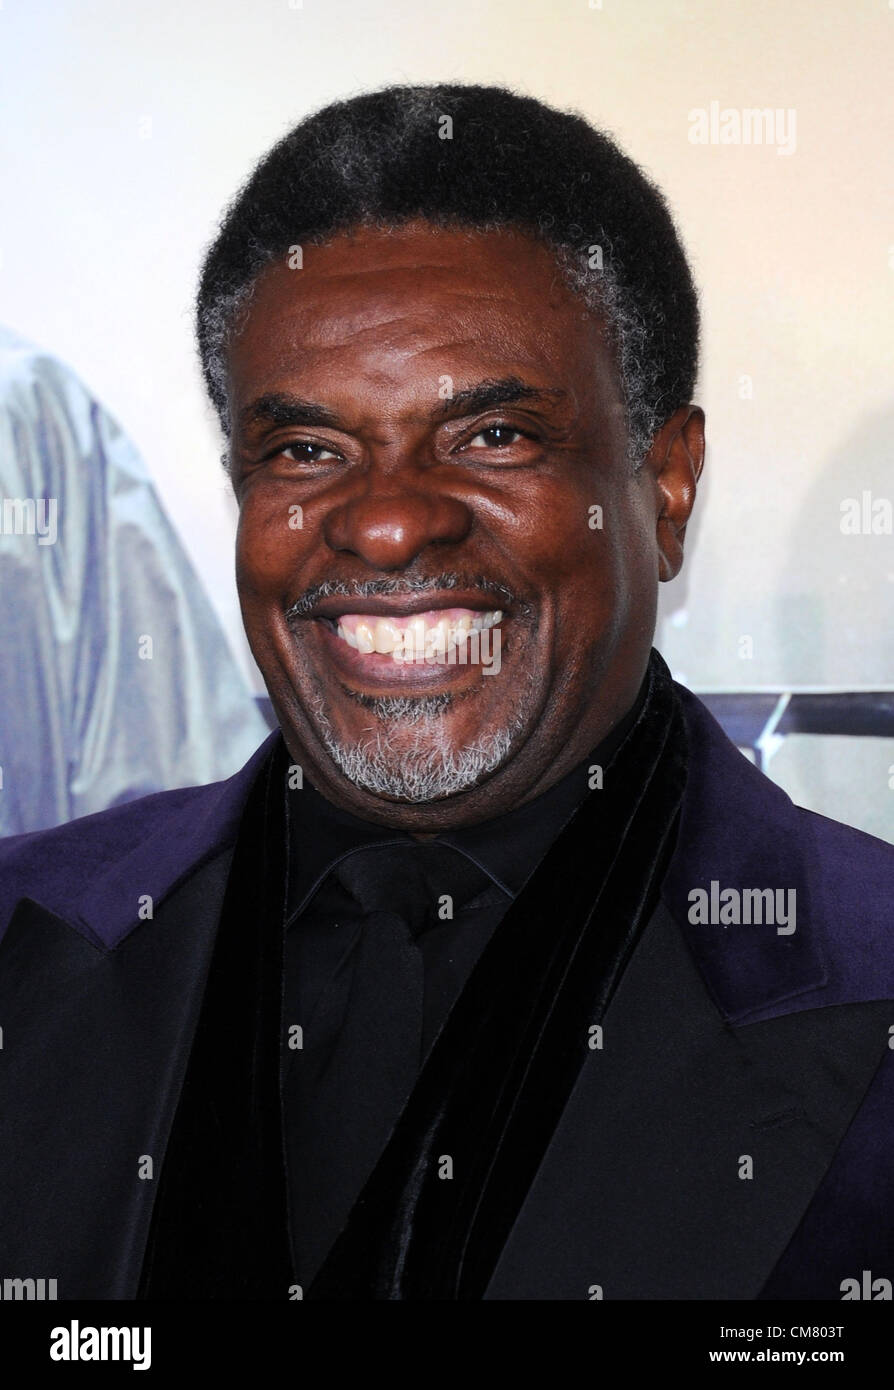 Los Angeles, USA. 24th October 2012. Keith David arriving at the film premiere of 'Cloud Atlas' in Los Angeles - Stock Image